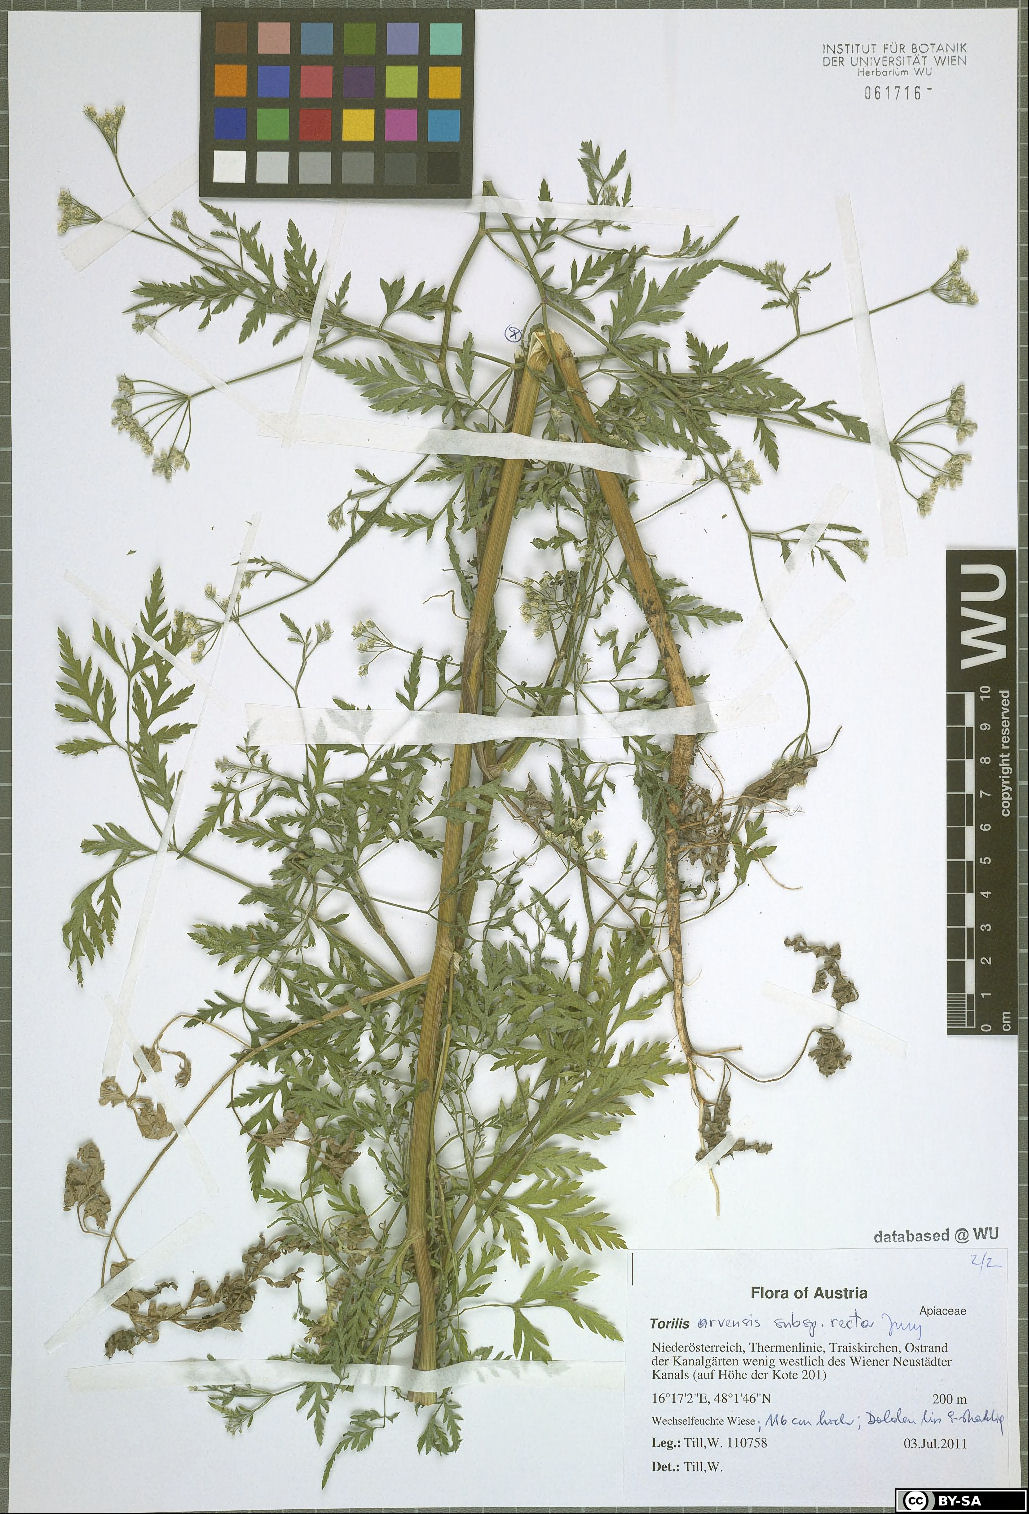 © University of Vienna, Institute for Botany - Herbarium WU - Rights: This work is licensed under a Creative Commons Attribution-ShareAlike 3.0 Unported License.  - Identifier: WU - Herbarium WU - 232511<br>